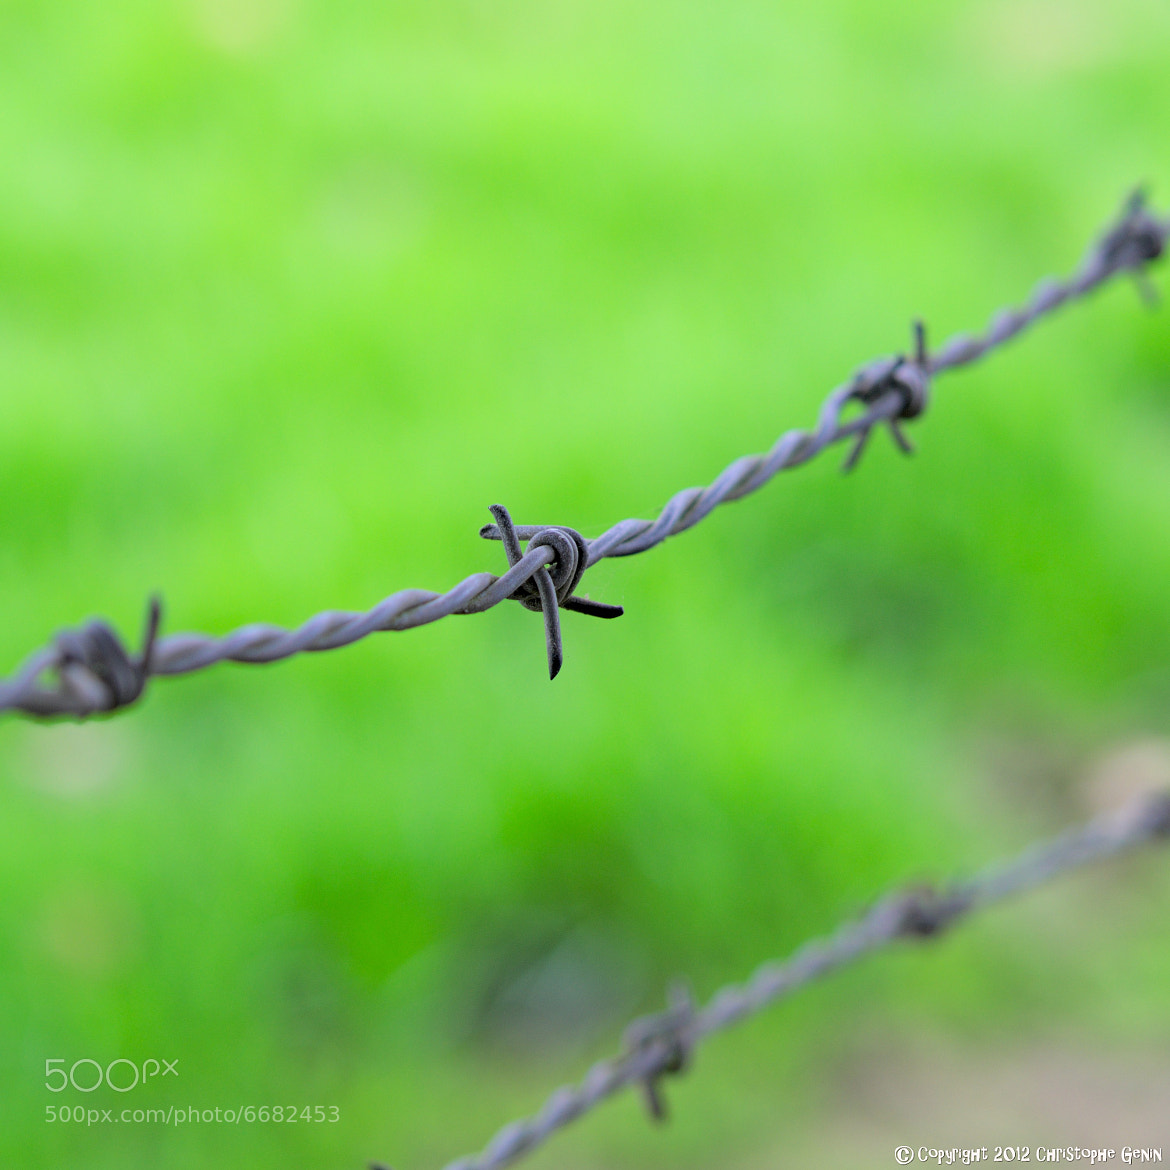 Photograph green fence :) by christophe genin on 500px